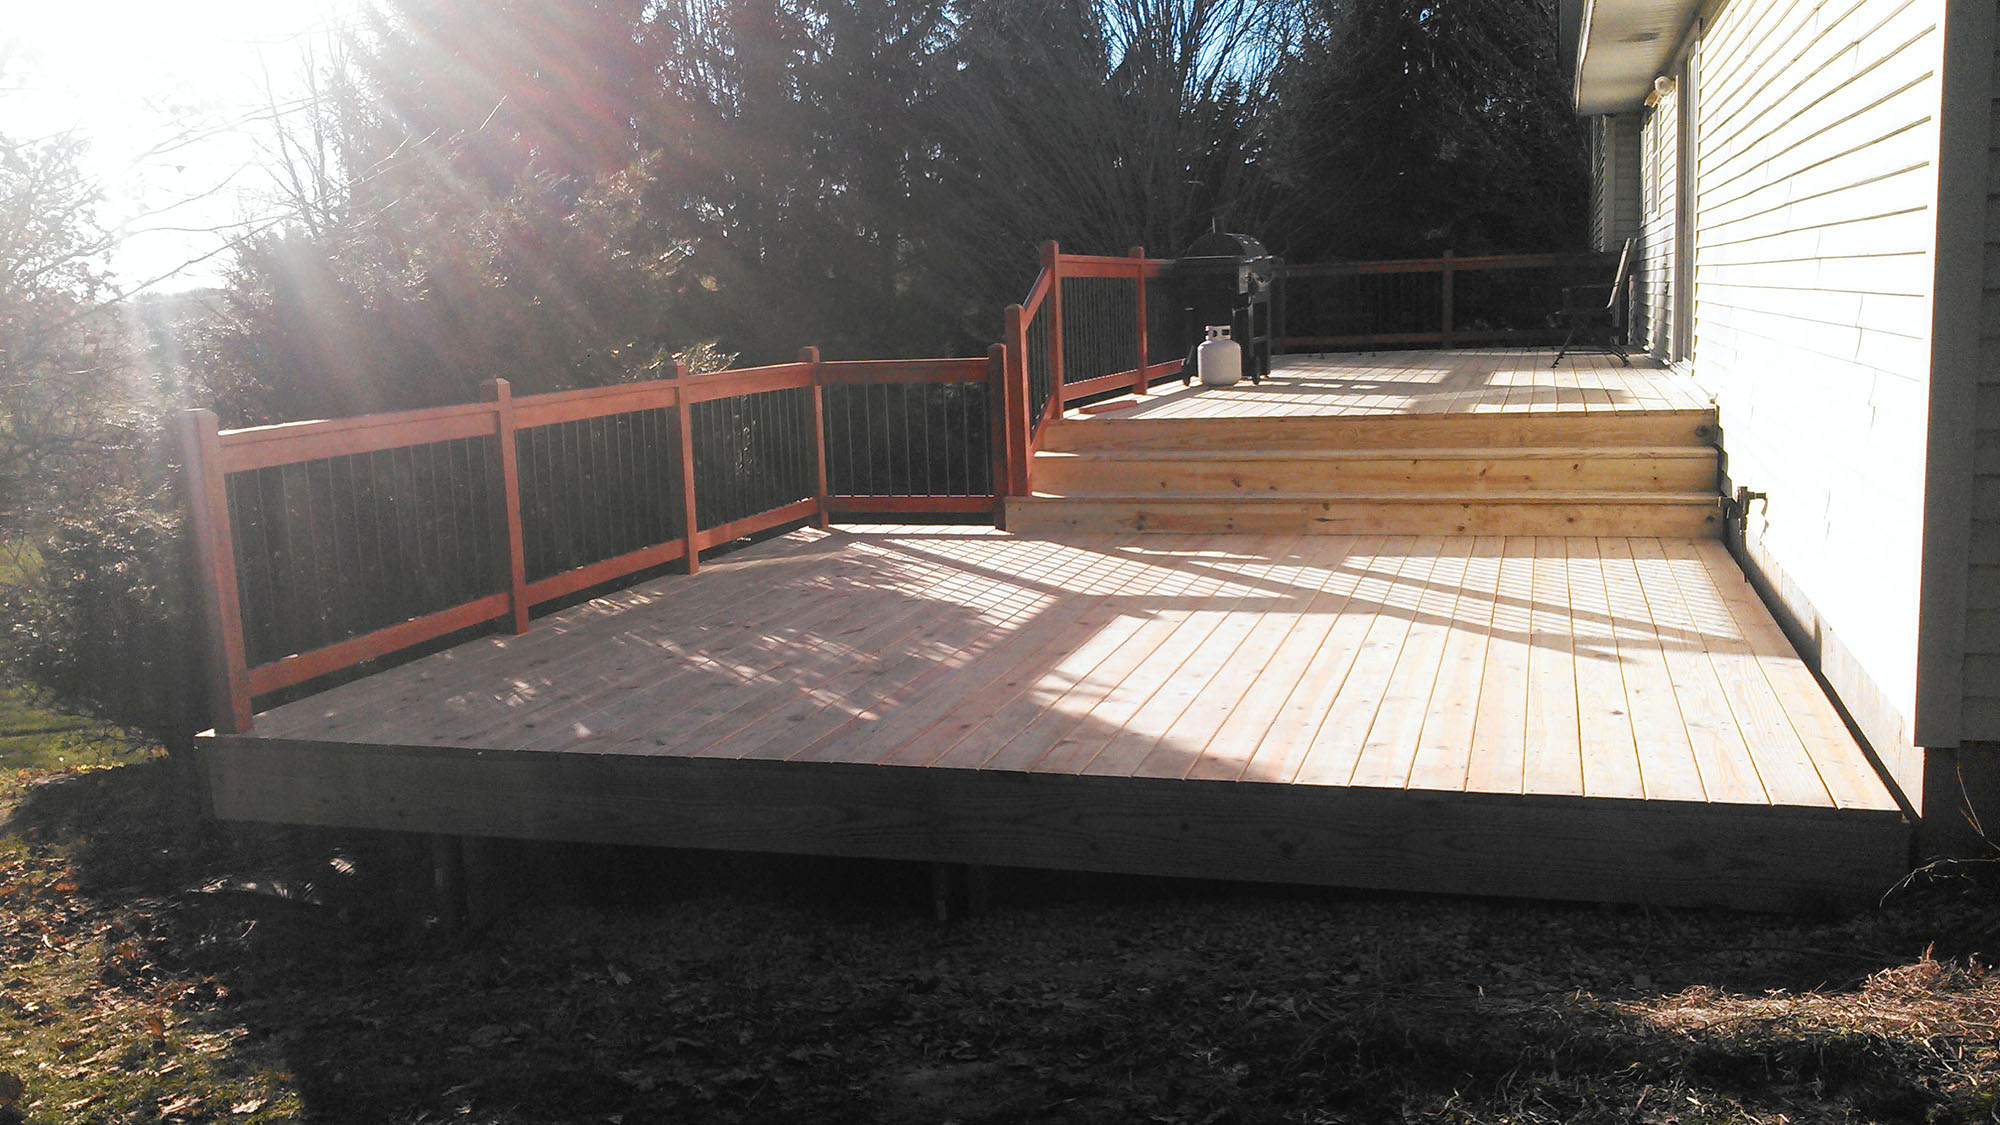 id new decks older deck hot title and modern are to be sundance they constructed of location hold easily tub effortlessly store reinforced spa installation your the weight blog ensure part can